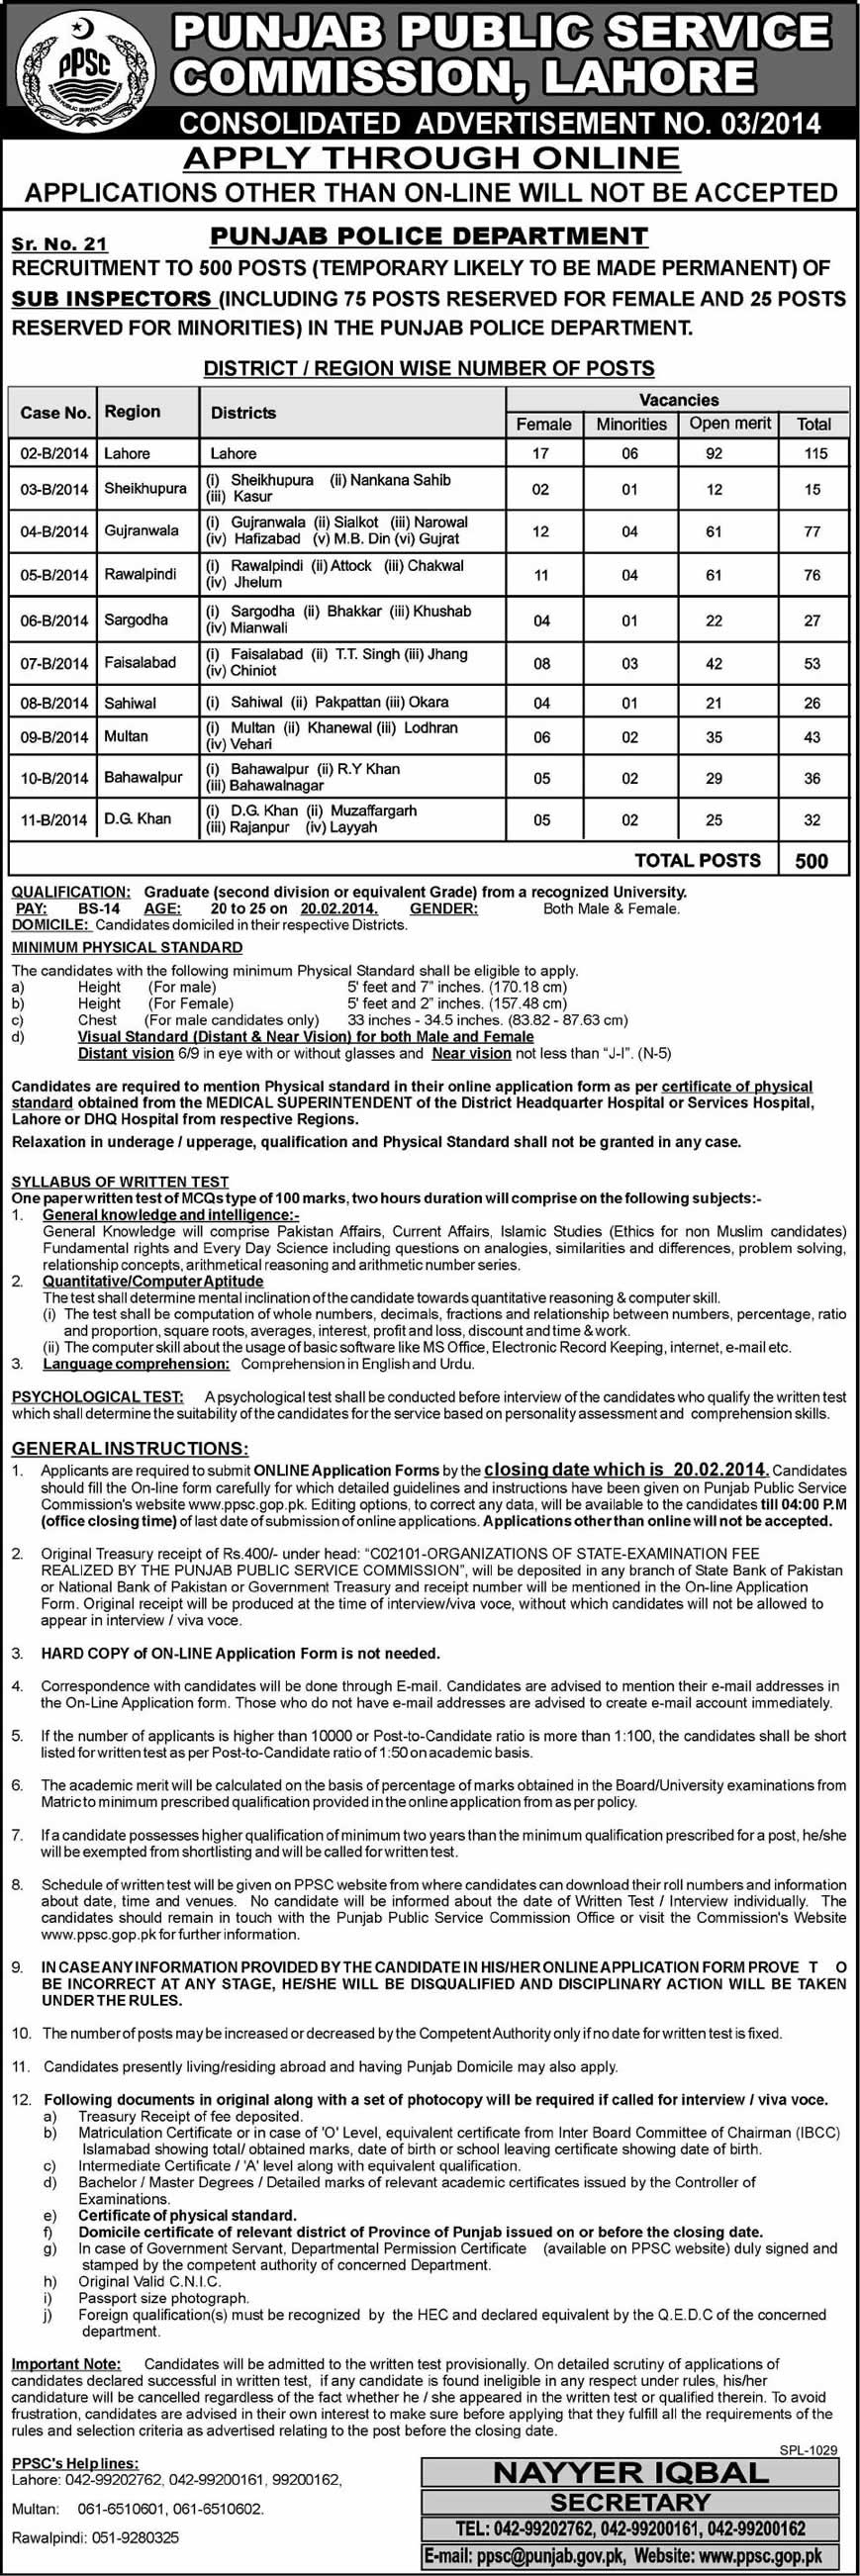 PPSC Jobs 2014 Latest for Sub Inspectors in Punjab Police